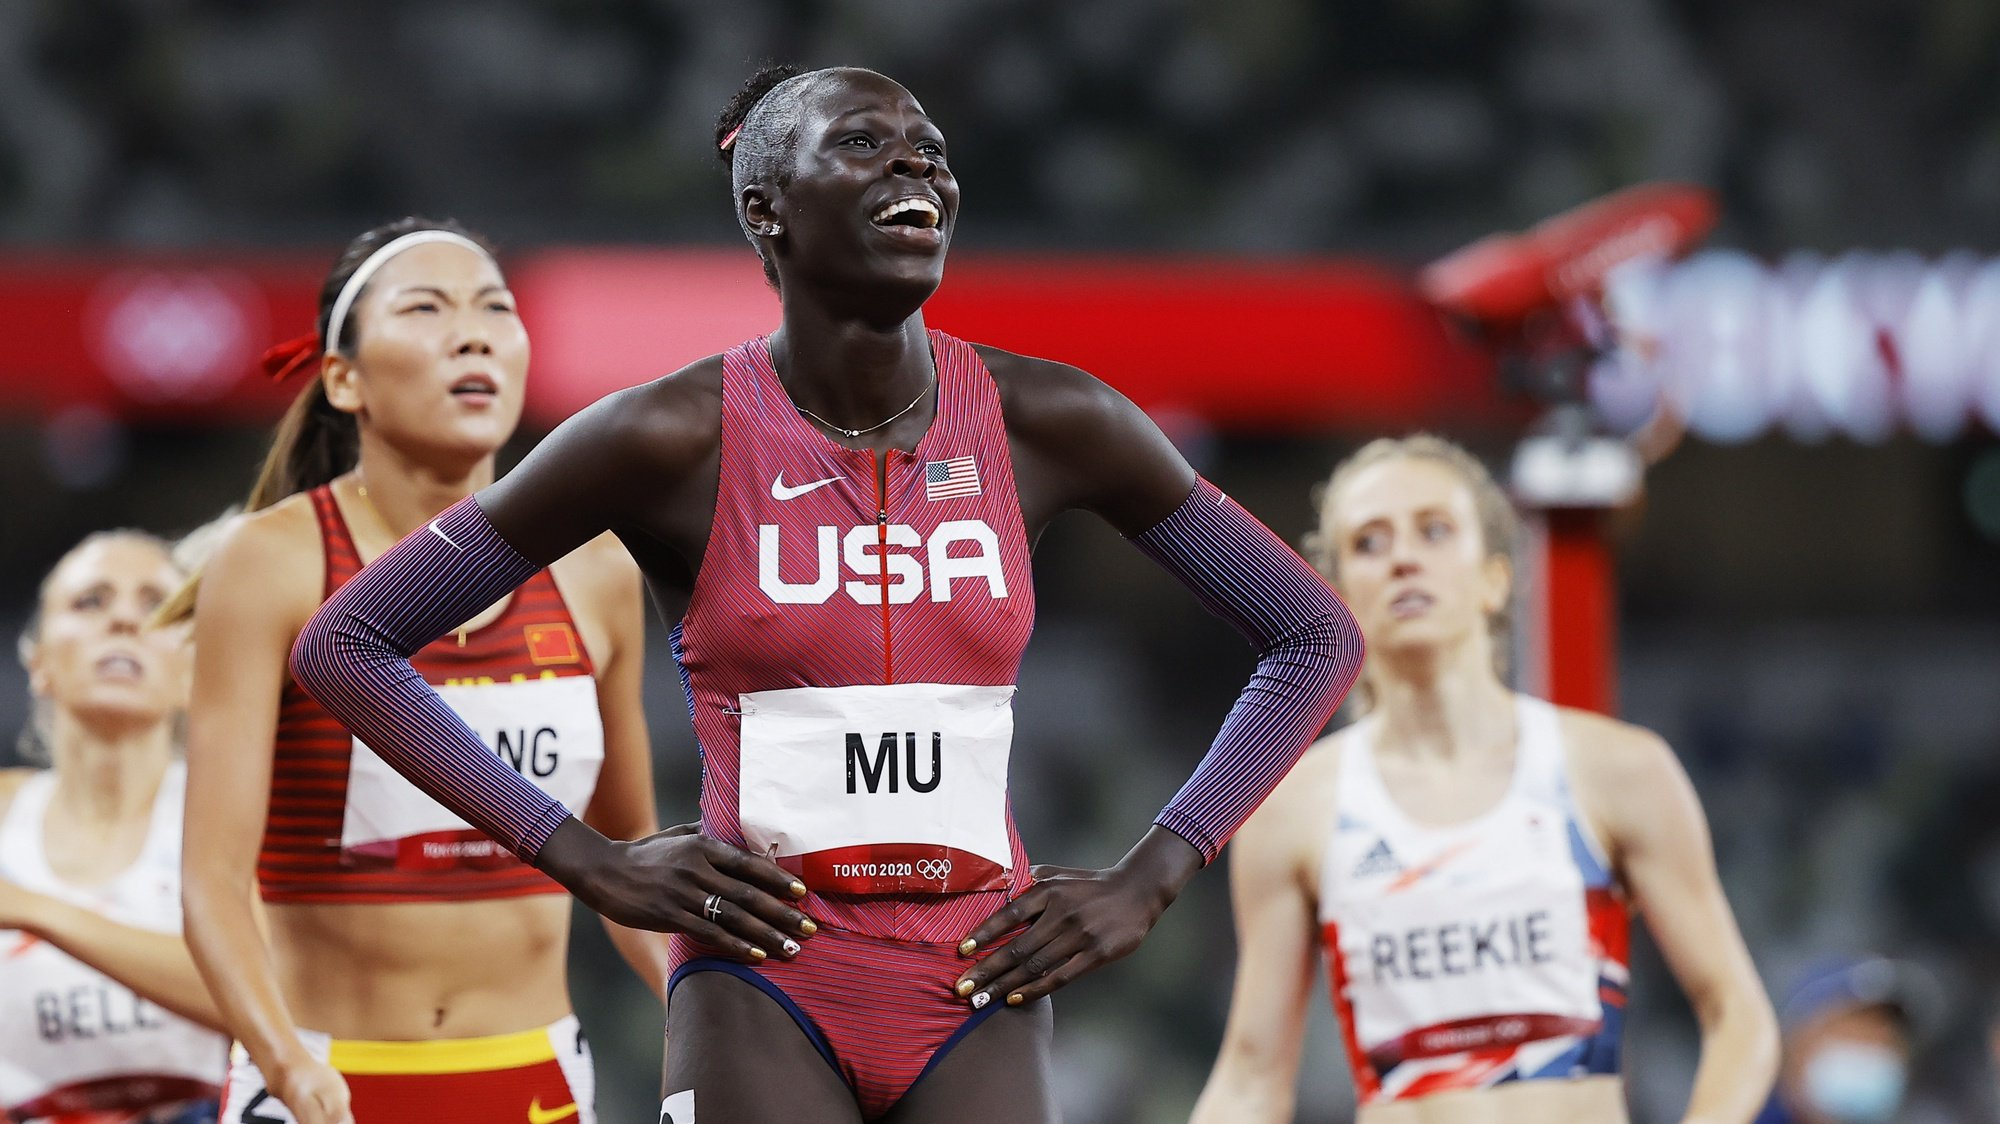 epa09391492 Athing Mu of the US smiles after winning the Women's 800m final at the Athletics events of the Tokyo 2020 Olympic Games at the Olympic Stadium in Tokyo, Japan, 03 August 2021.  EPA/VALDRIN XHEMAJ